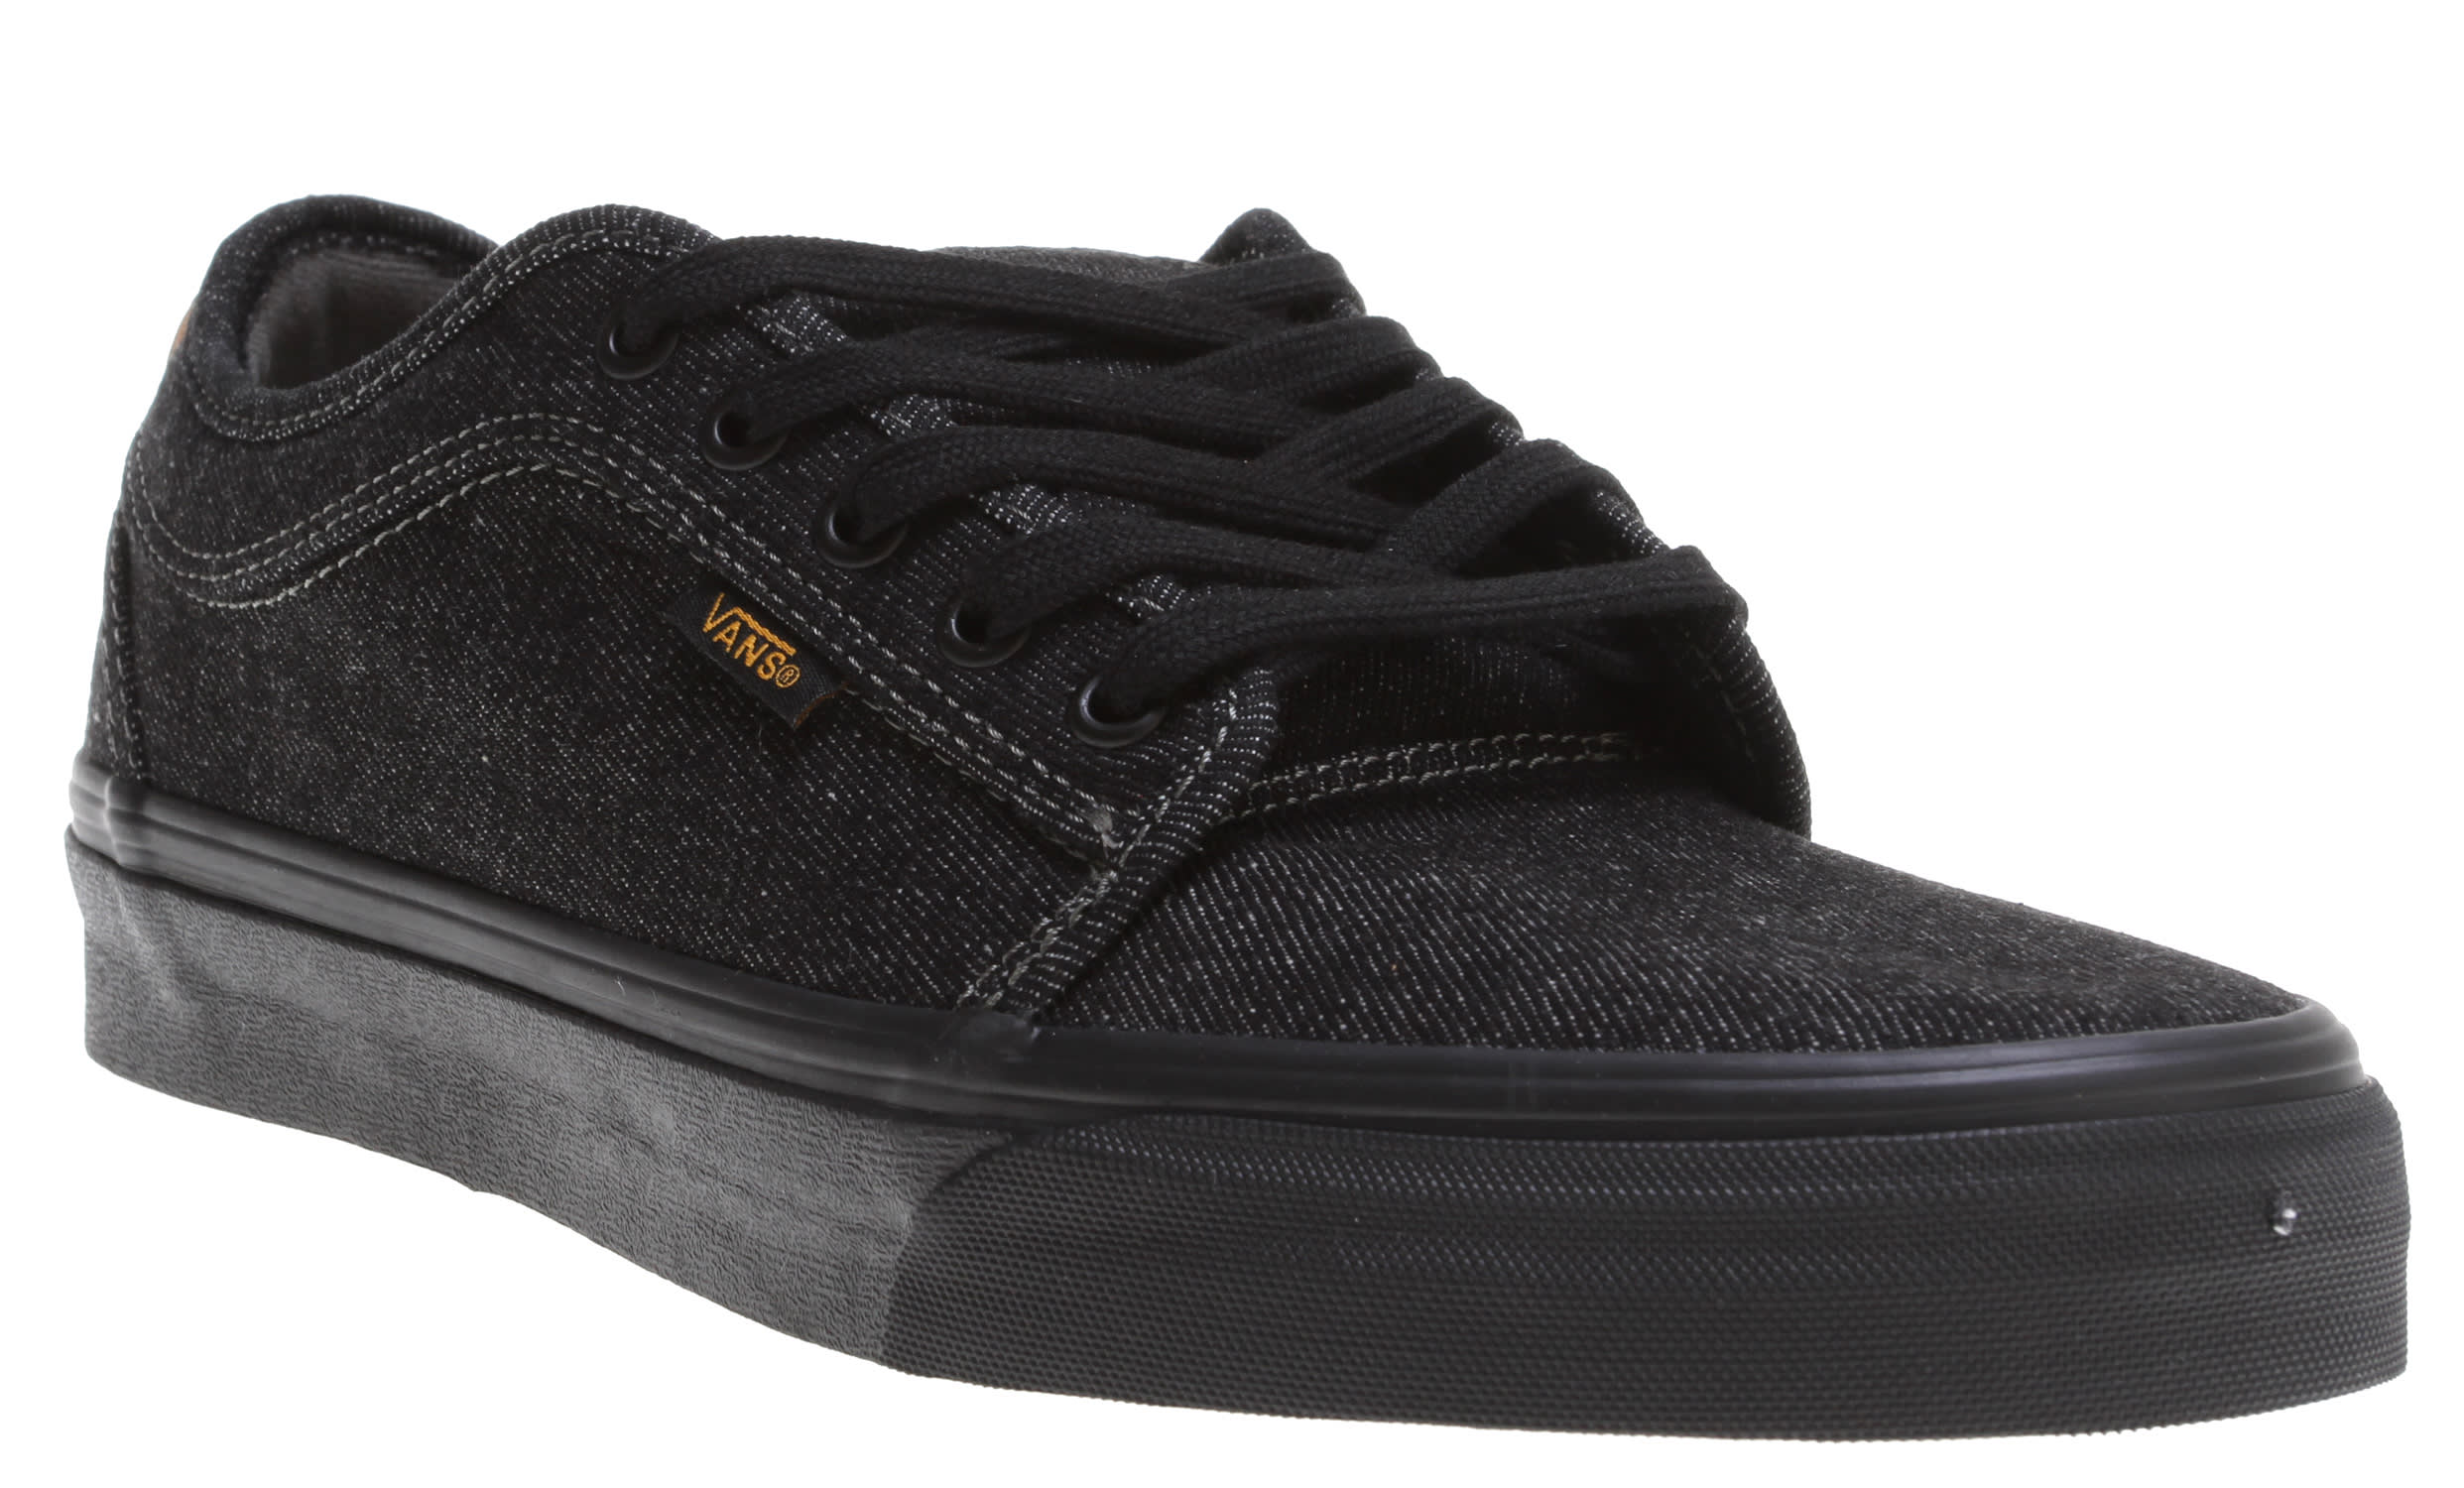 b4960e320fa69c Vans Chukka Low BMX Shoes - thumbnail 2